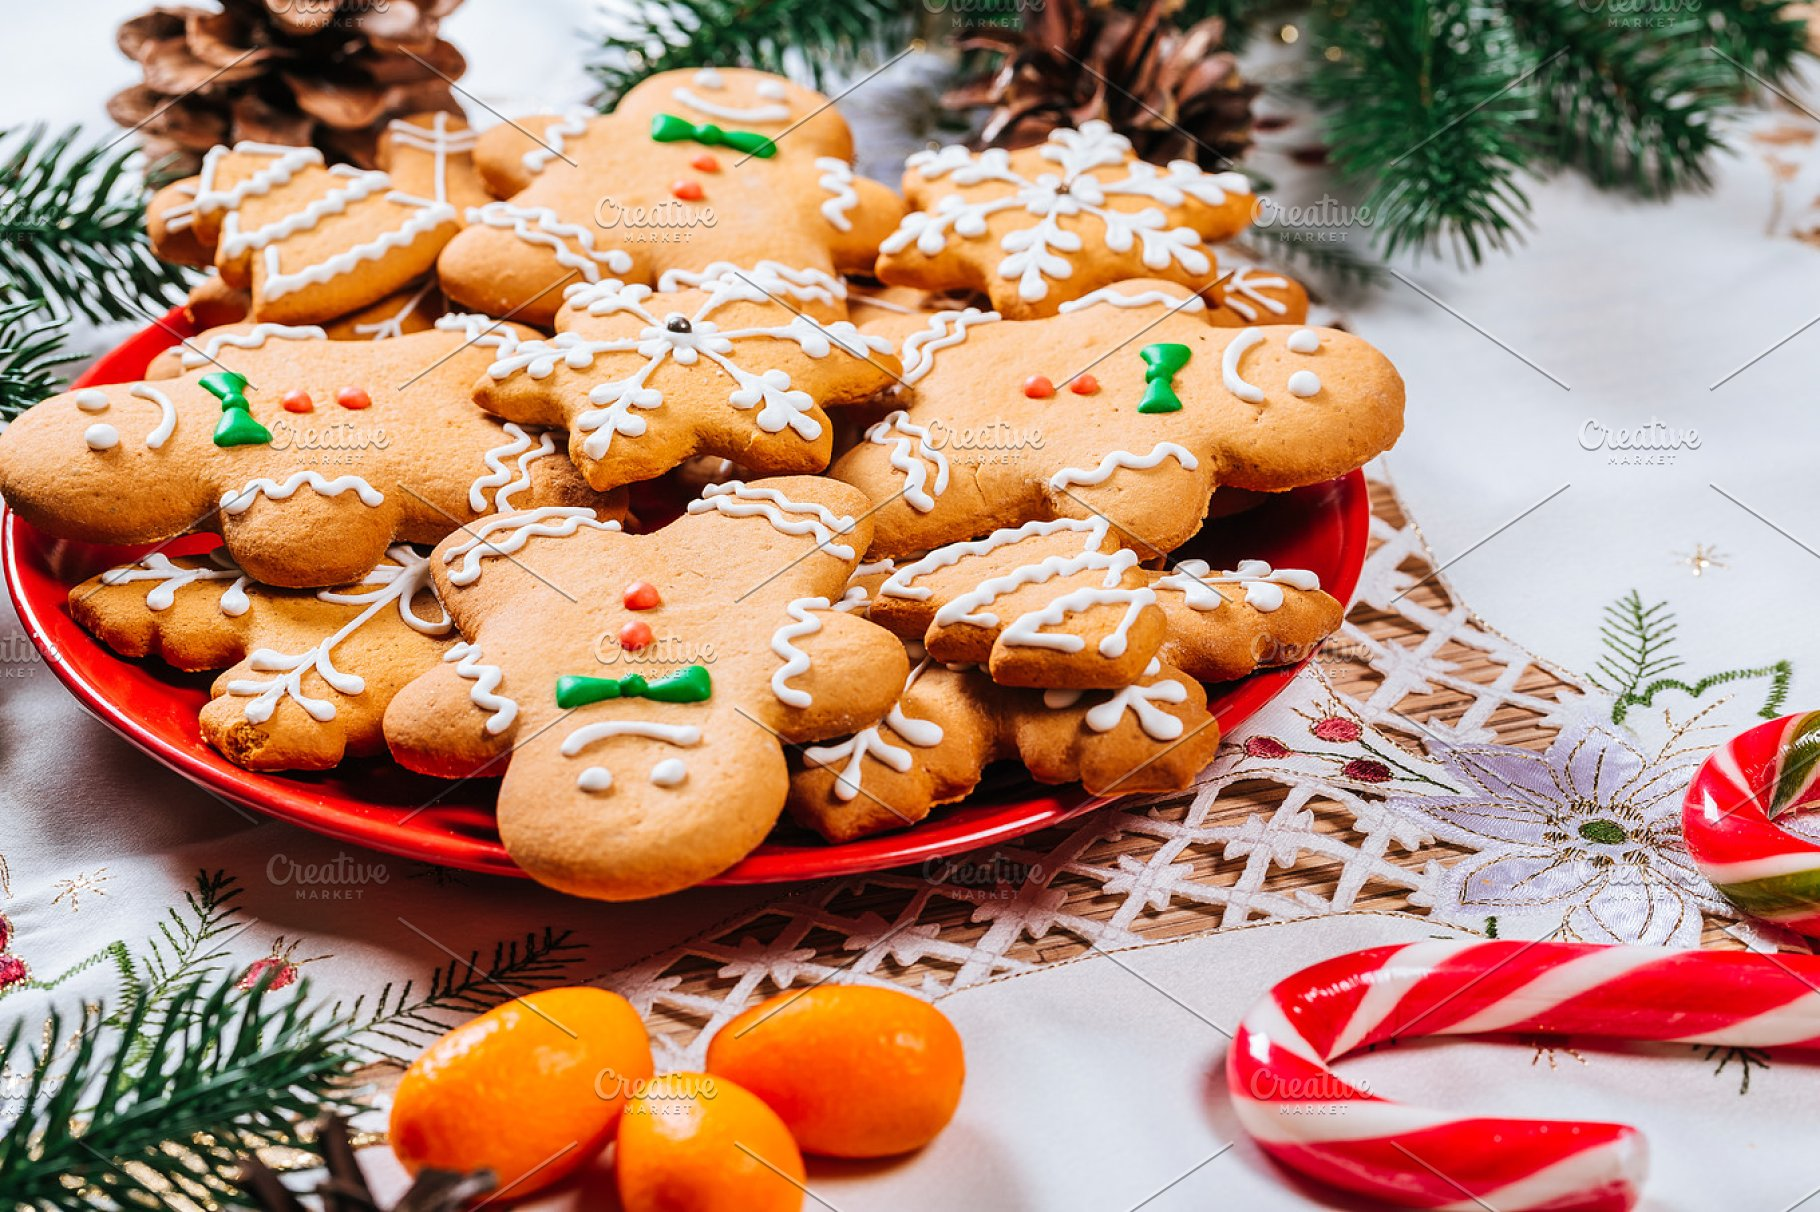 Christmas Gingerbread Cookies Homemade On Red Plate With Branches Of Christmas Tree And Decor On Home New Year Table Merry Christmas Postcard